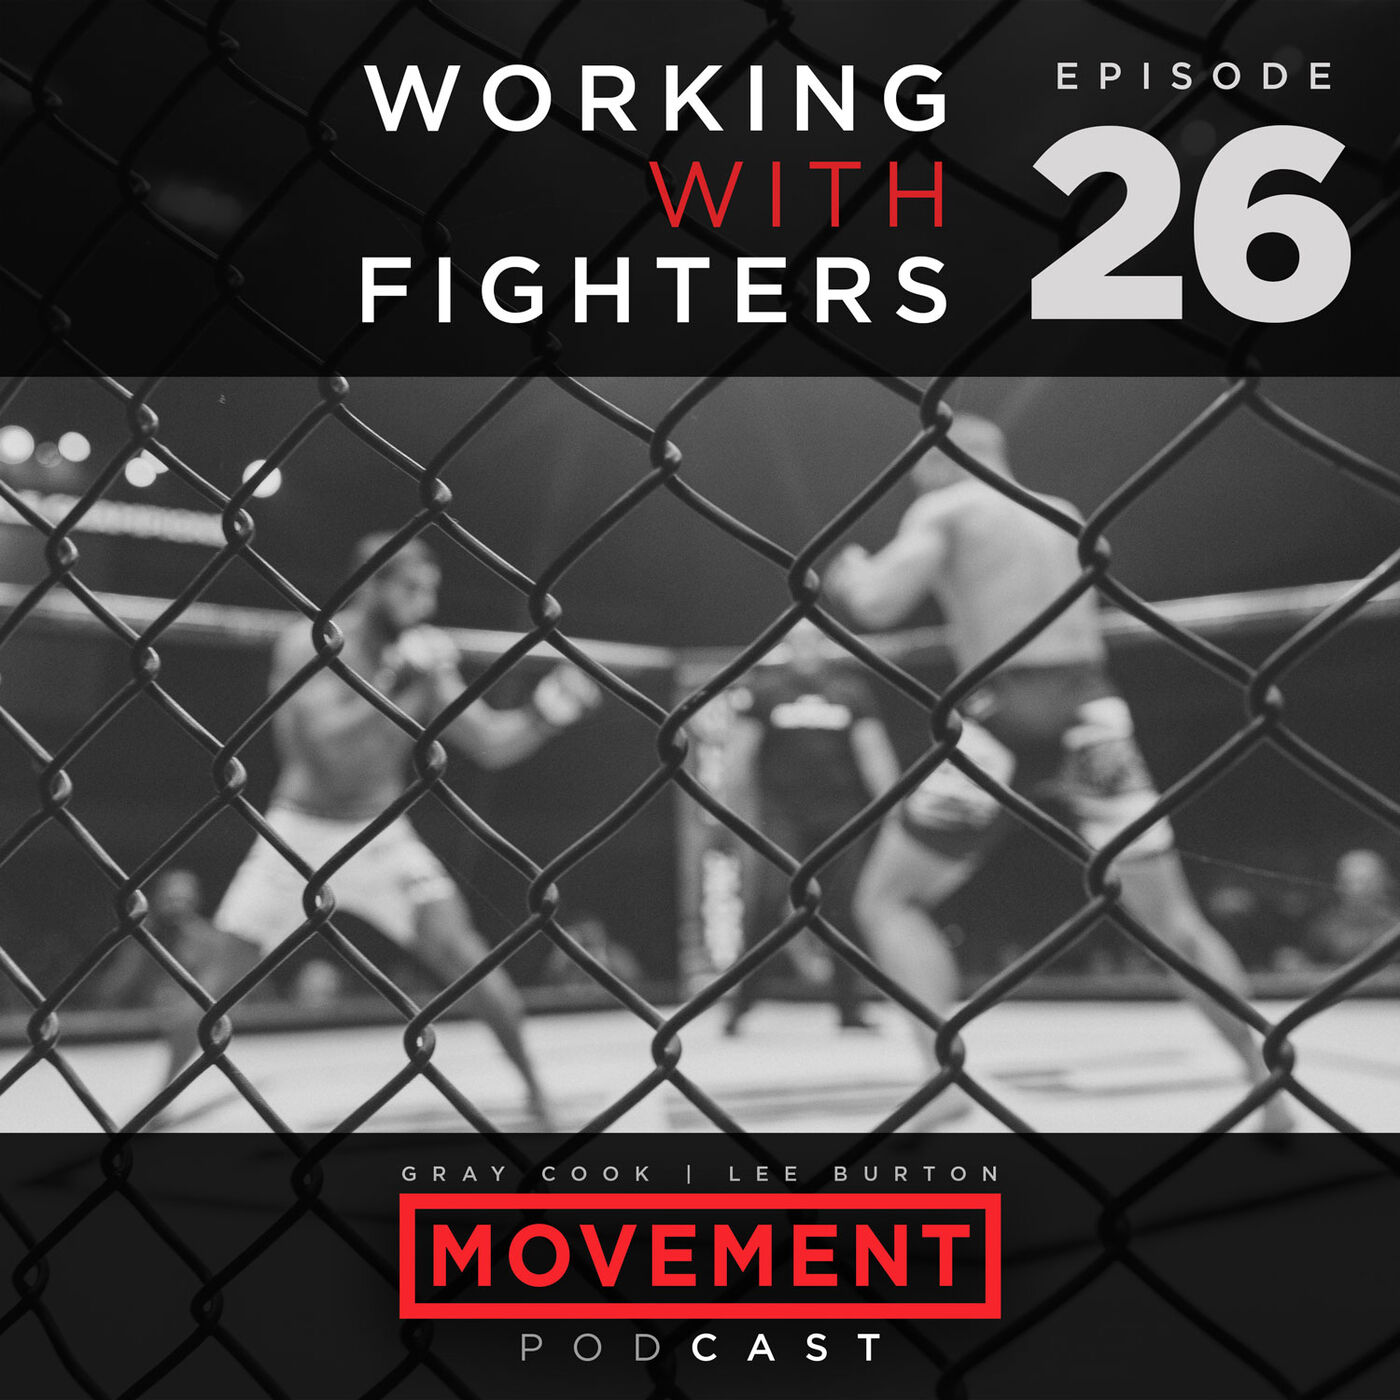 Working with Fighters